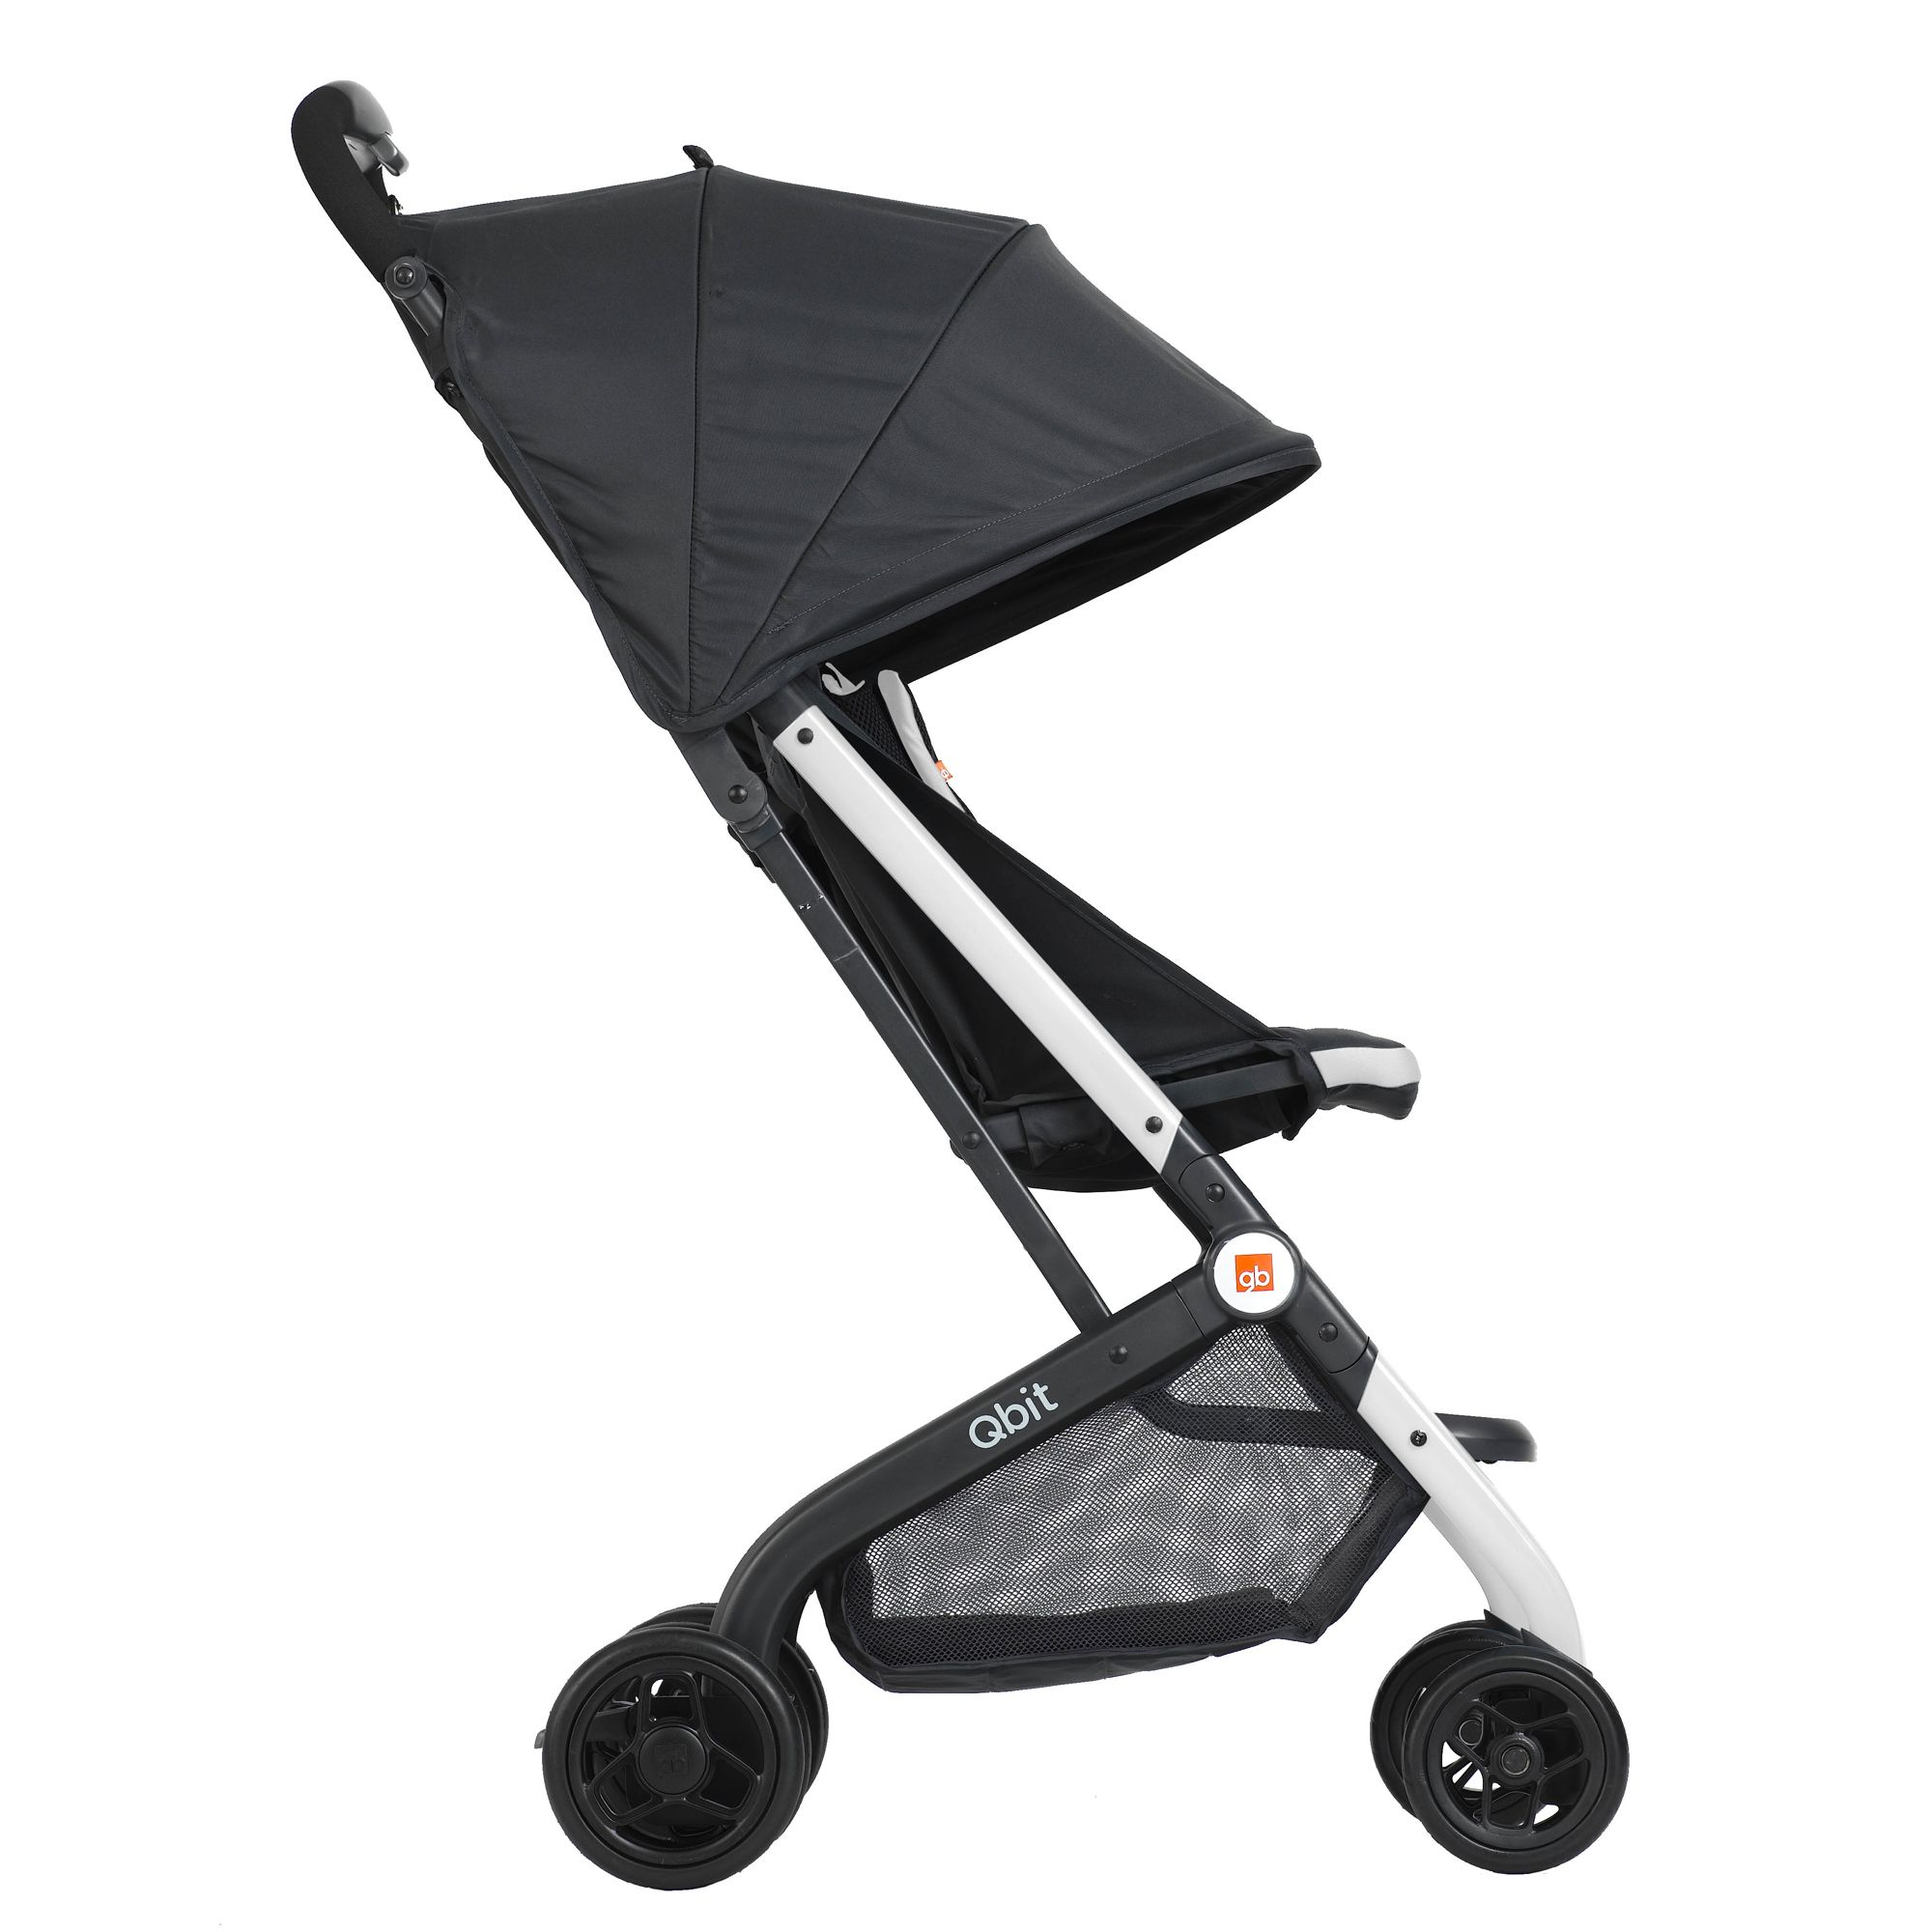 They will be launching a fully collapsible stroller VERY